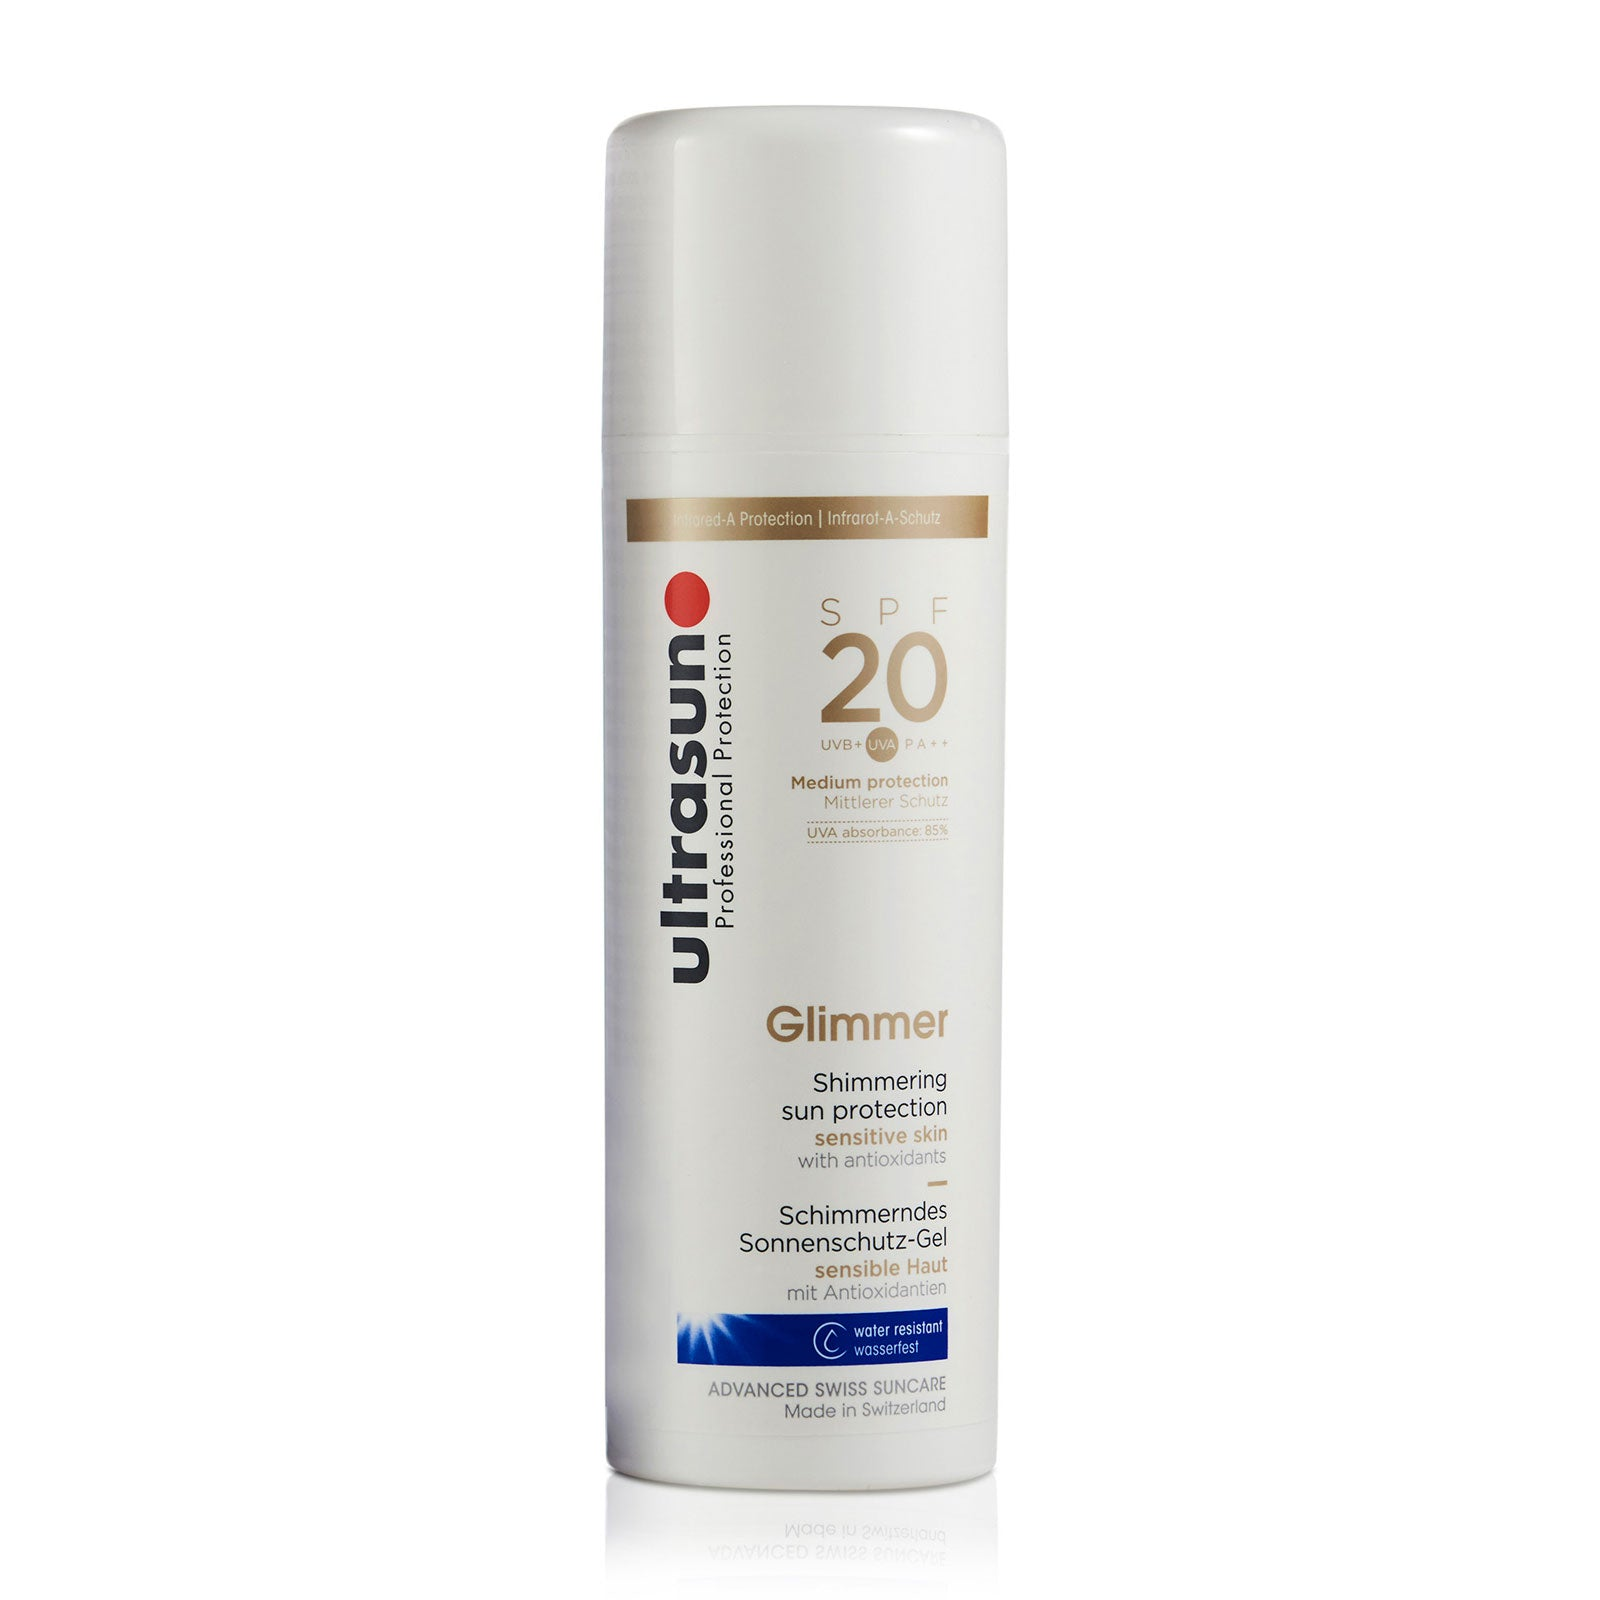 Ultrasun Sensitive Medium SPF20 Glimmer Formula 150ml